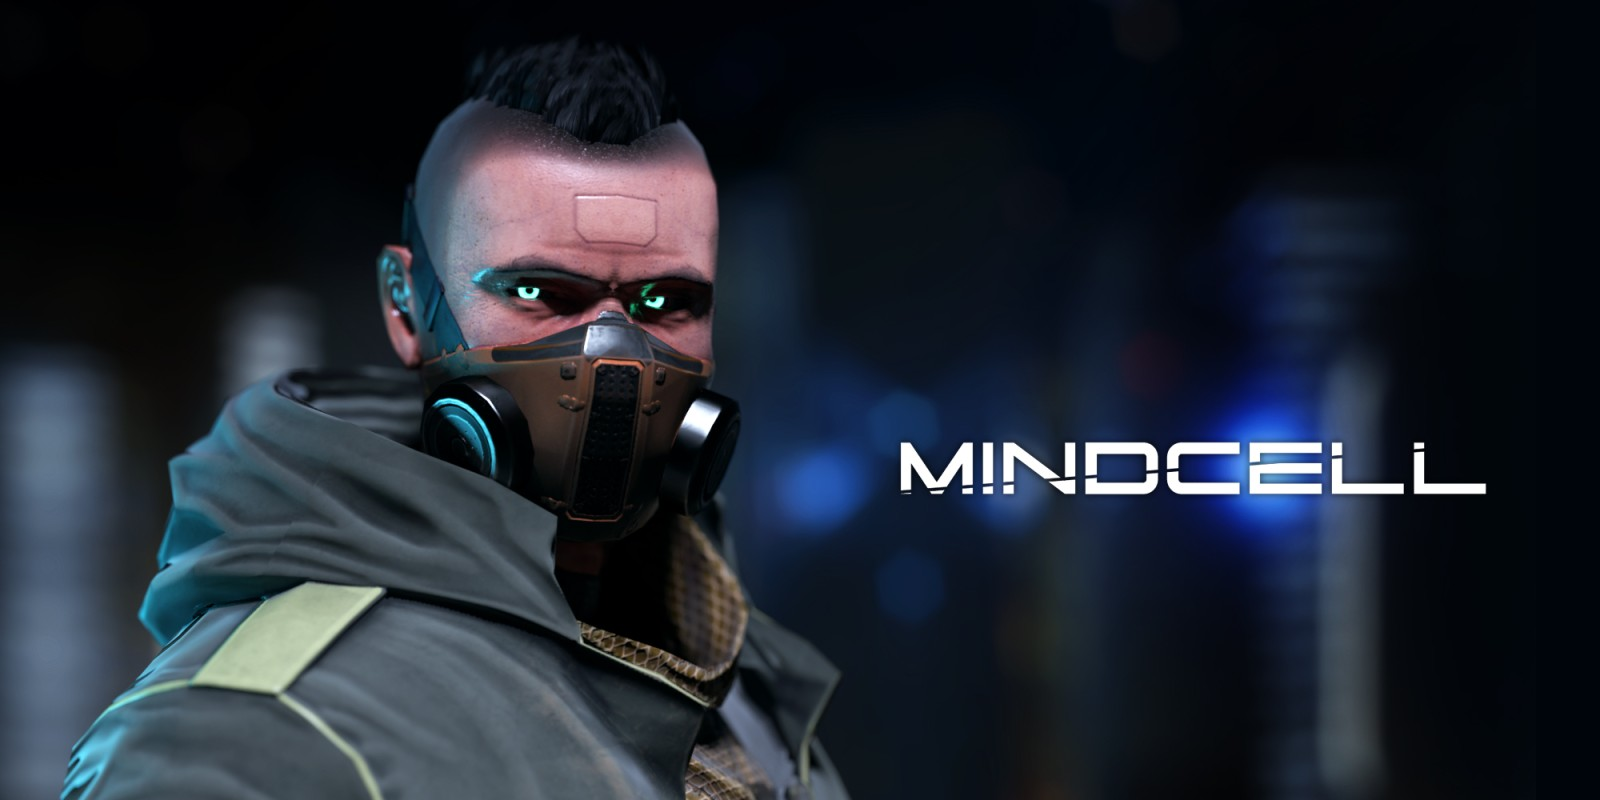 Mindcell